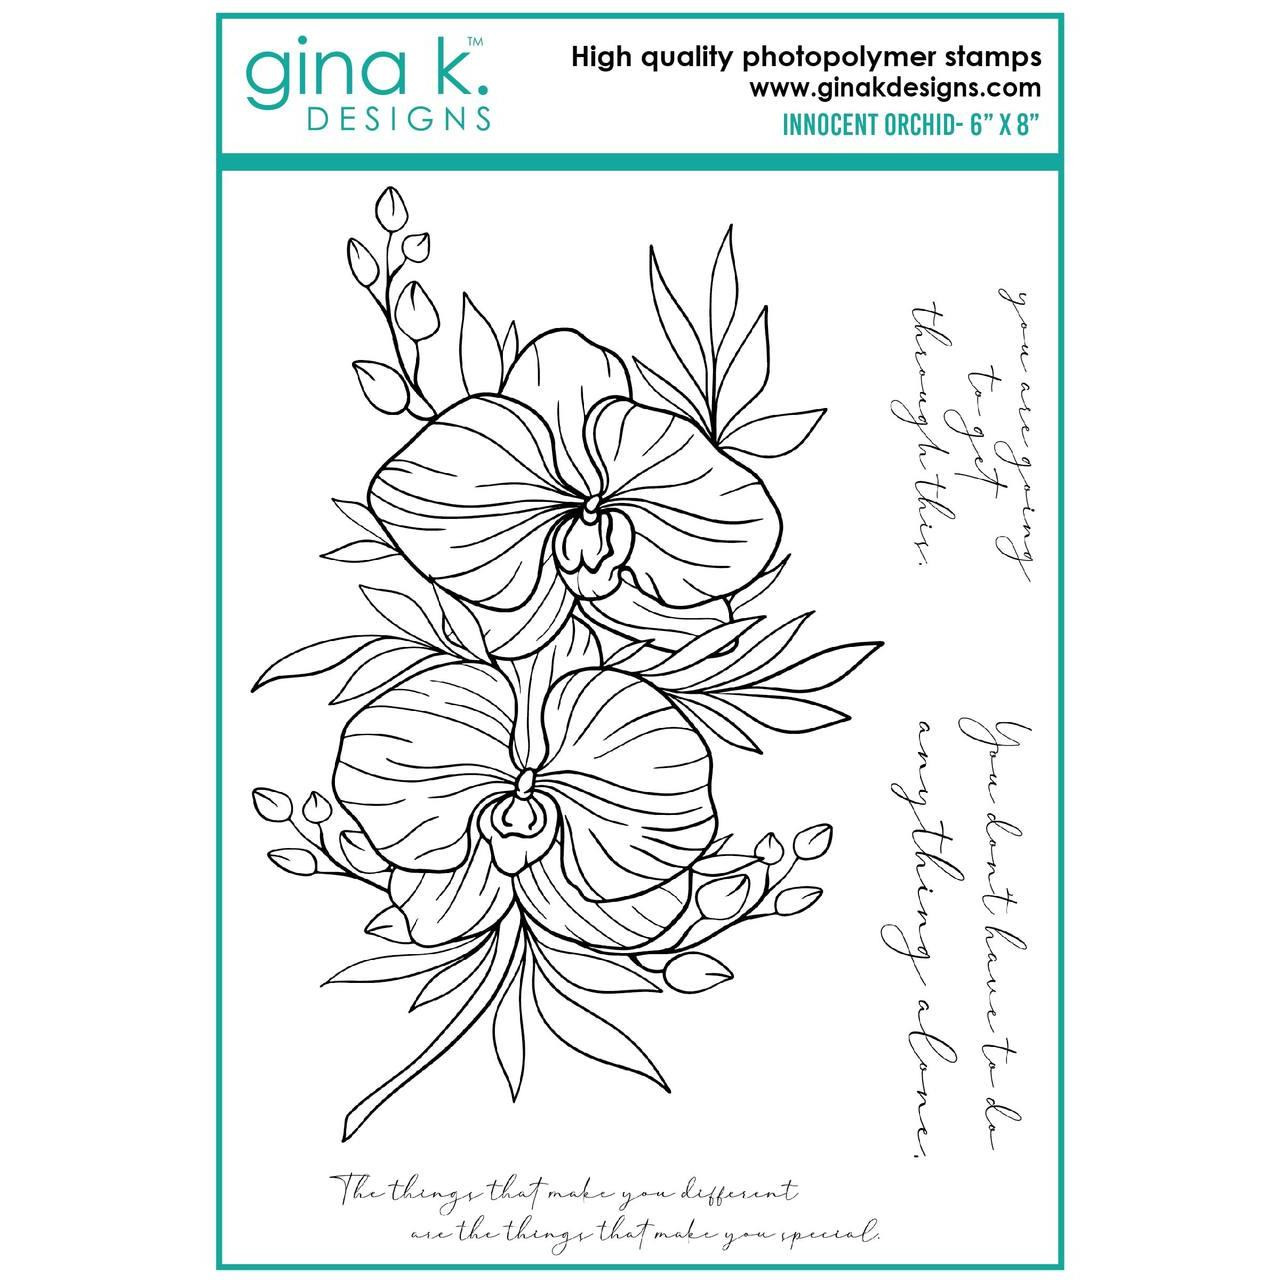 Innocent Orchid, Gina K Designs Clear Stamps - 609015526958